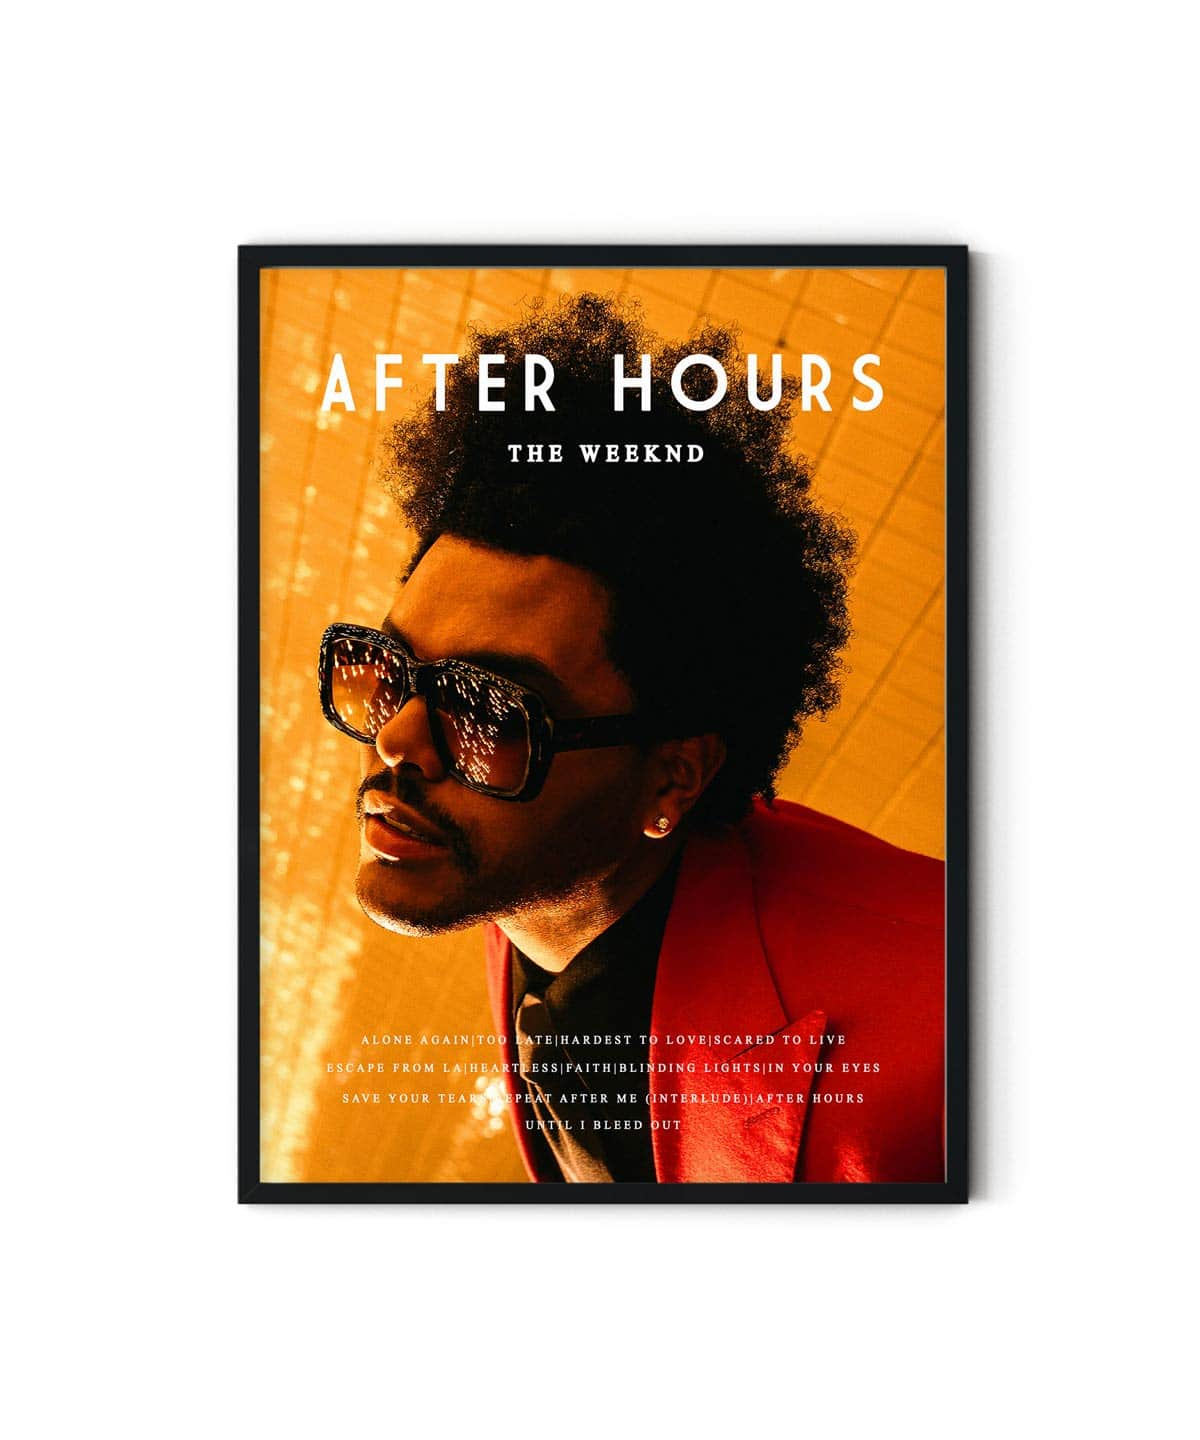 The-Weeknd-After-Hours-Poster-Duwart